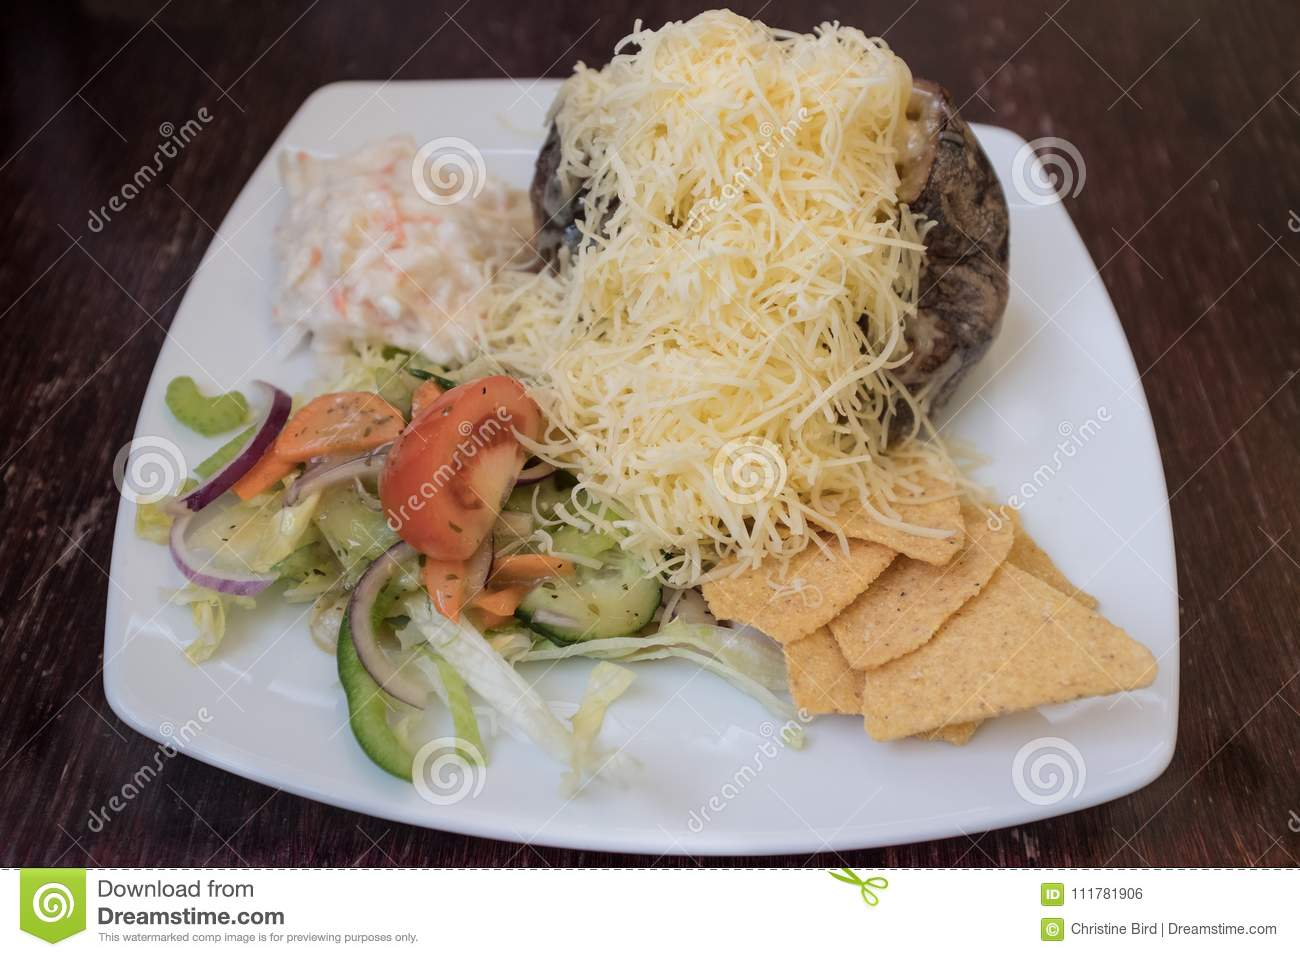 Baked potato with grated cheese, coleslaw and salad